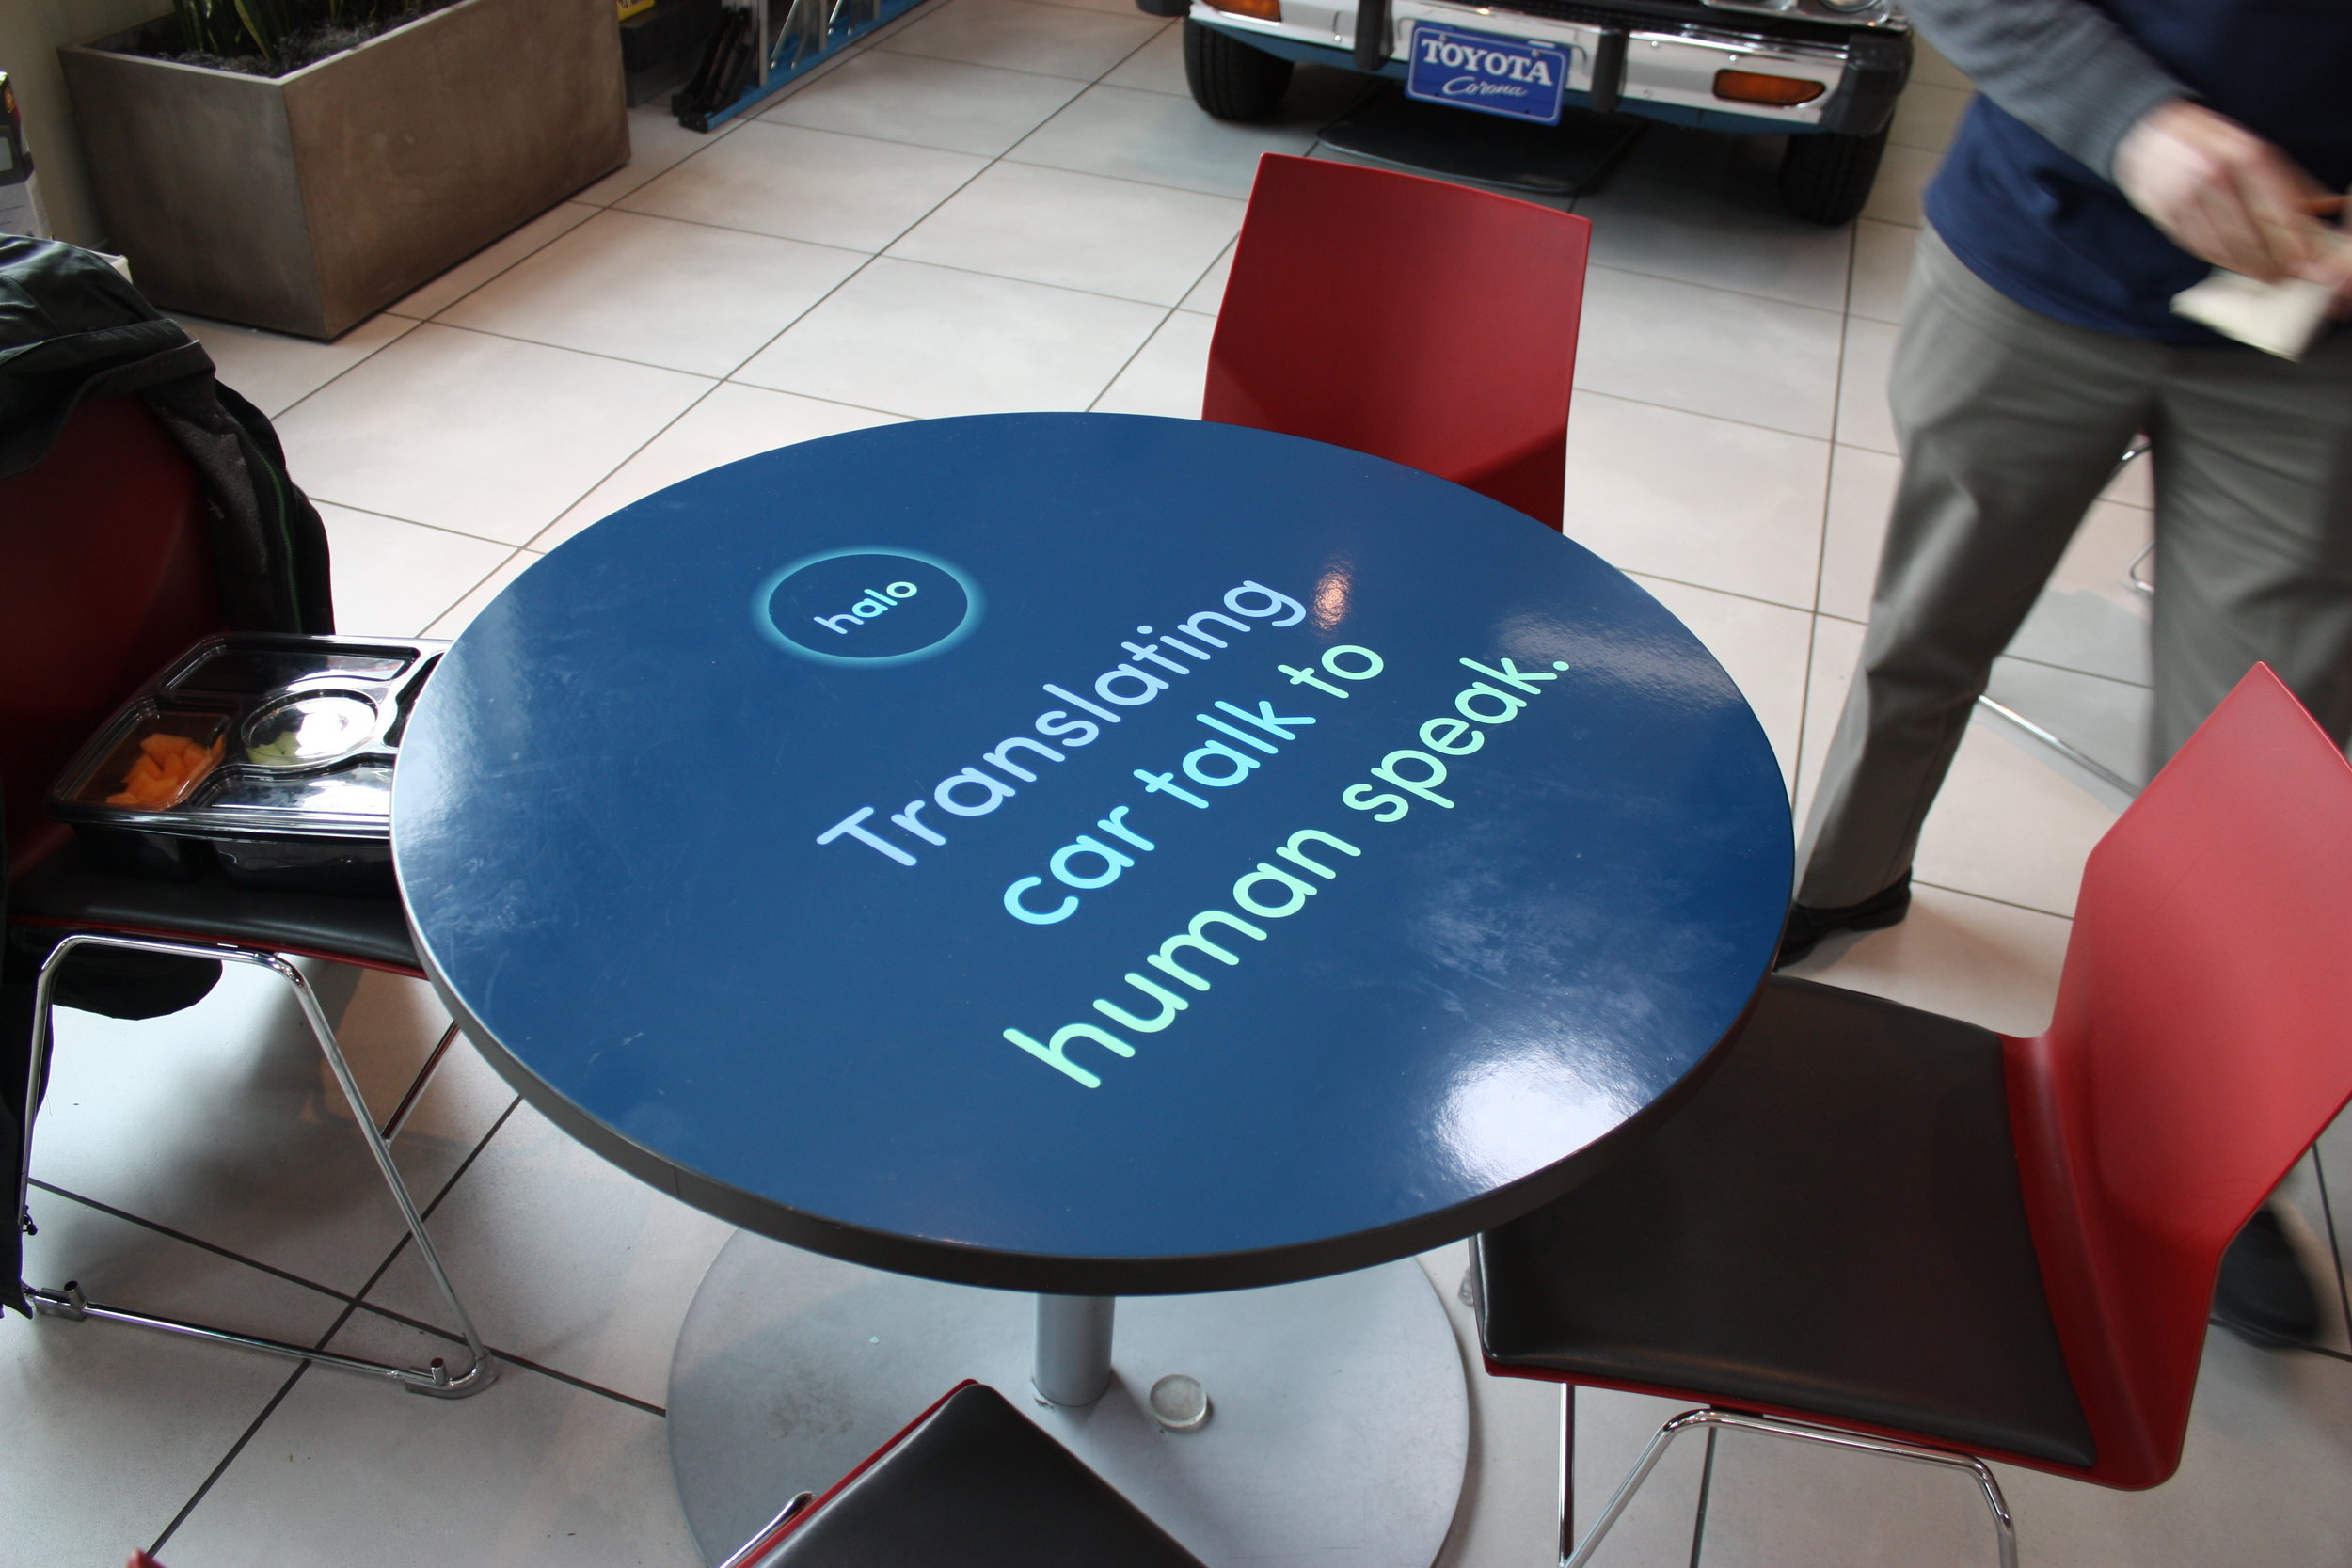 """designed to intrigue customers into asking a salesperson """"What's Halo?"""""""